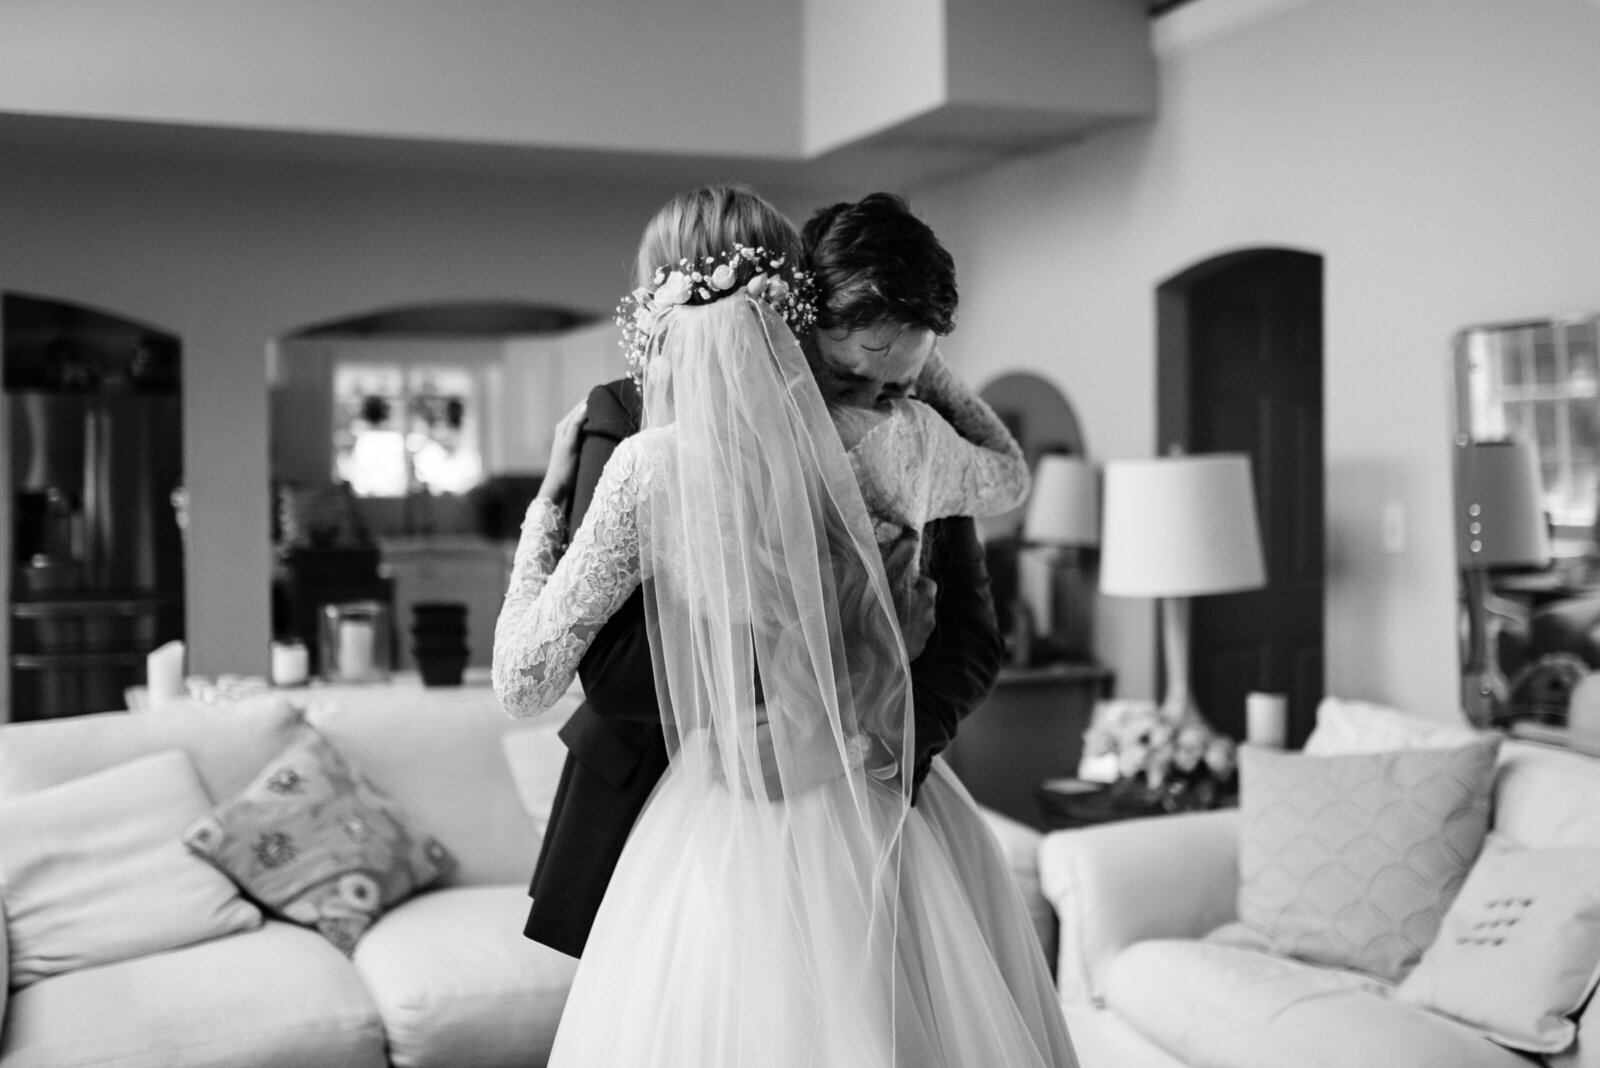 kansas-city-wedding-photographer-kyann-and-mat-photography-95